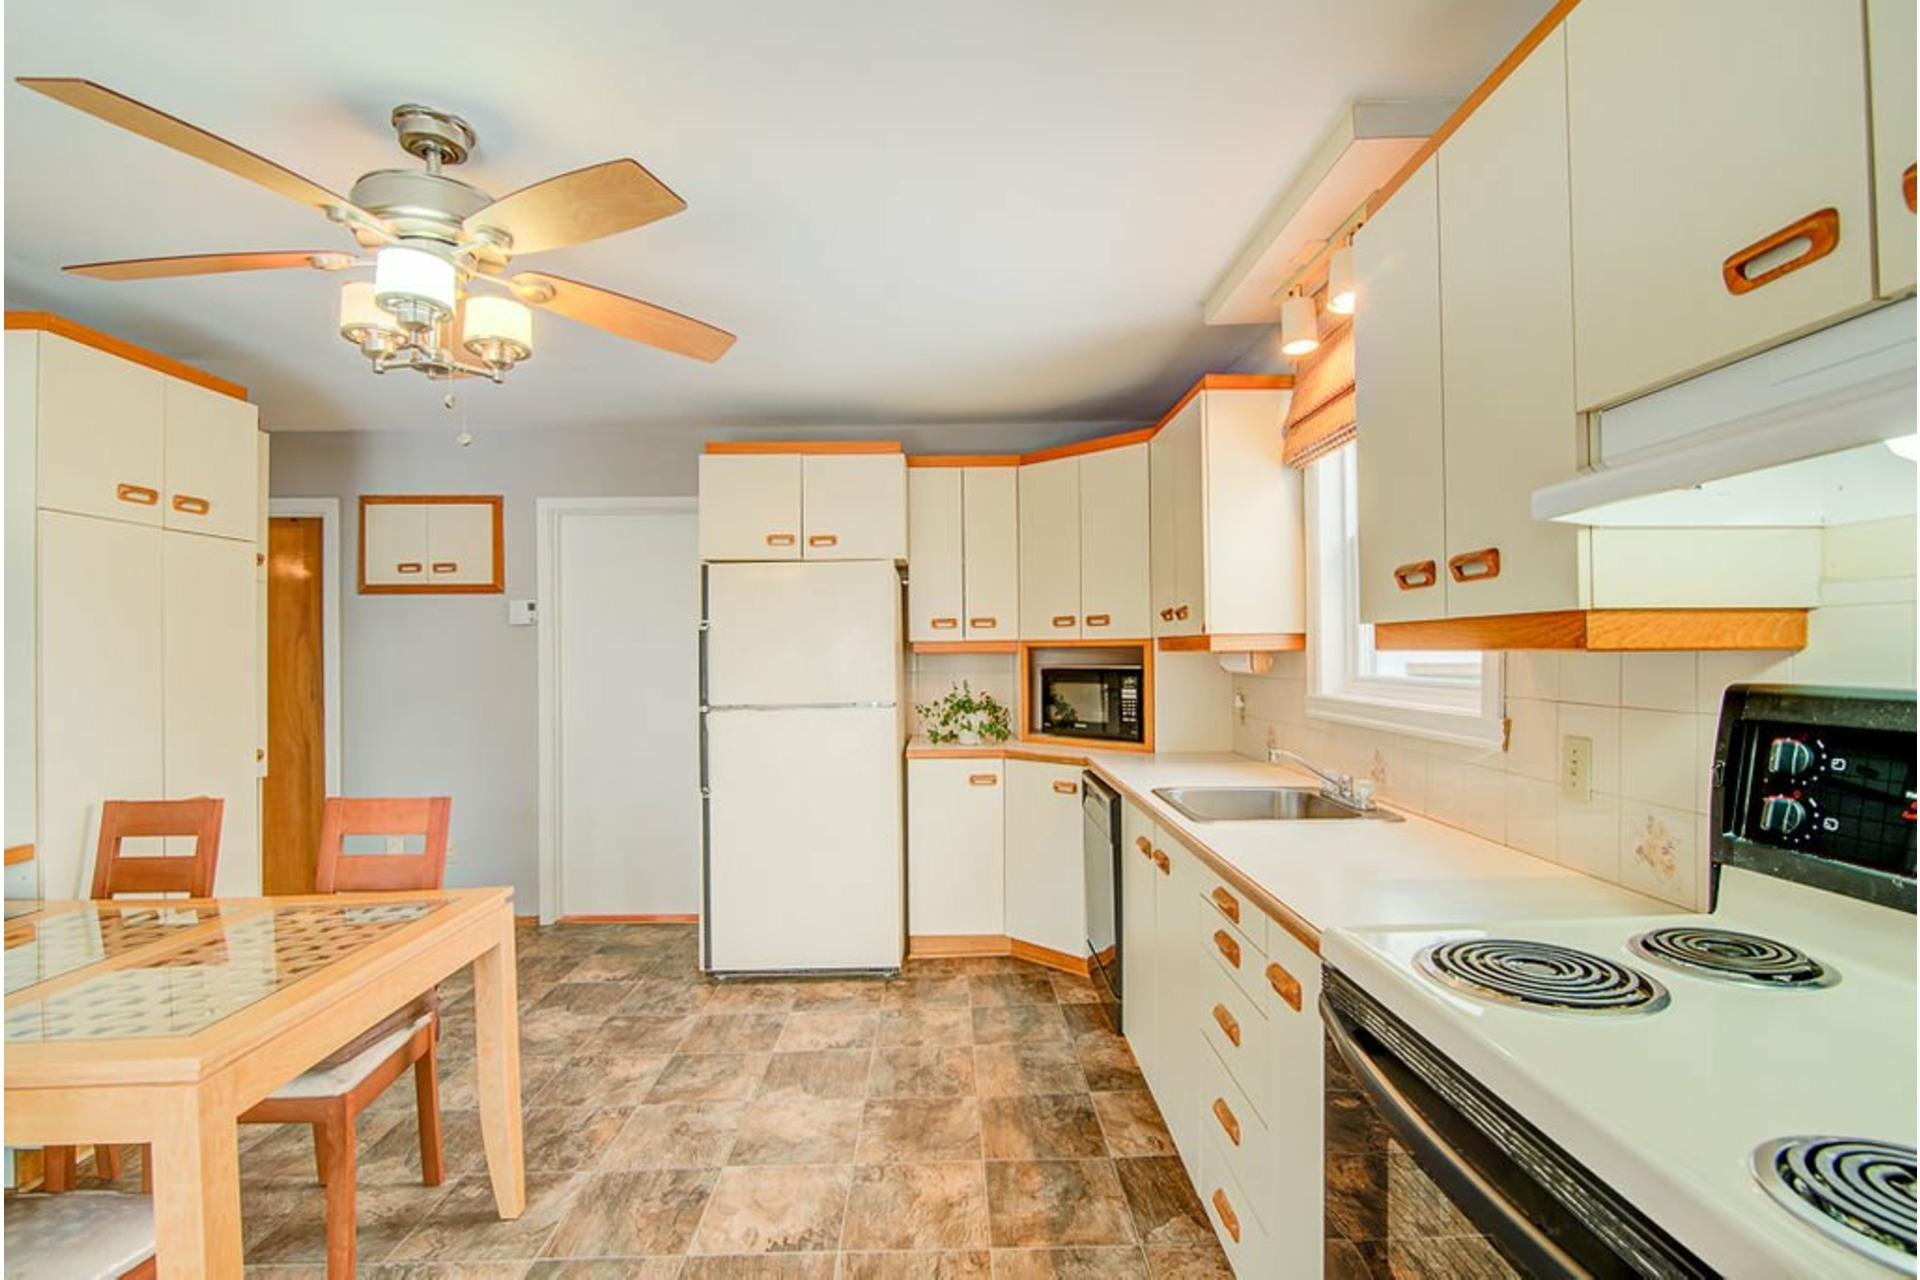 image 11 - House For sale Sainte-Anne-des-Plaines - 10 rooms